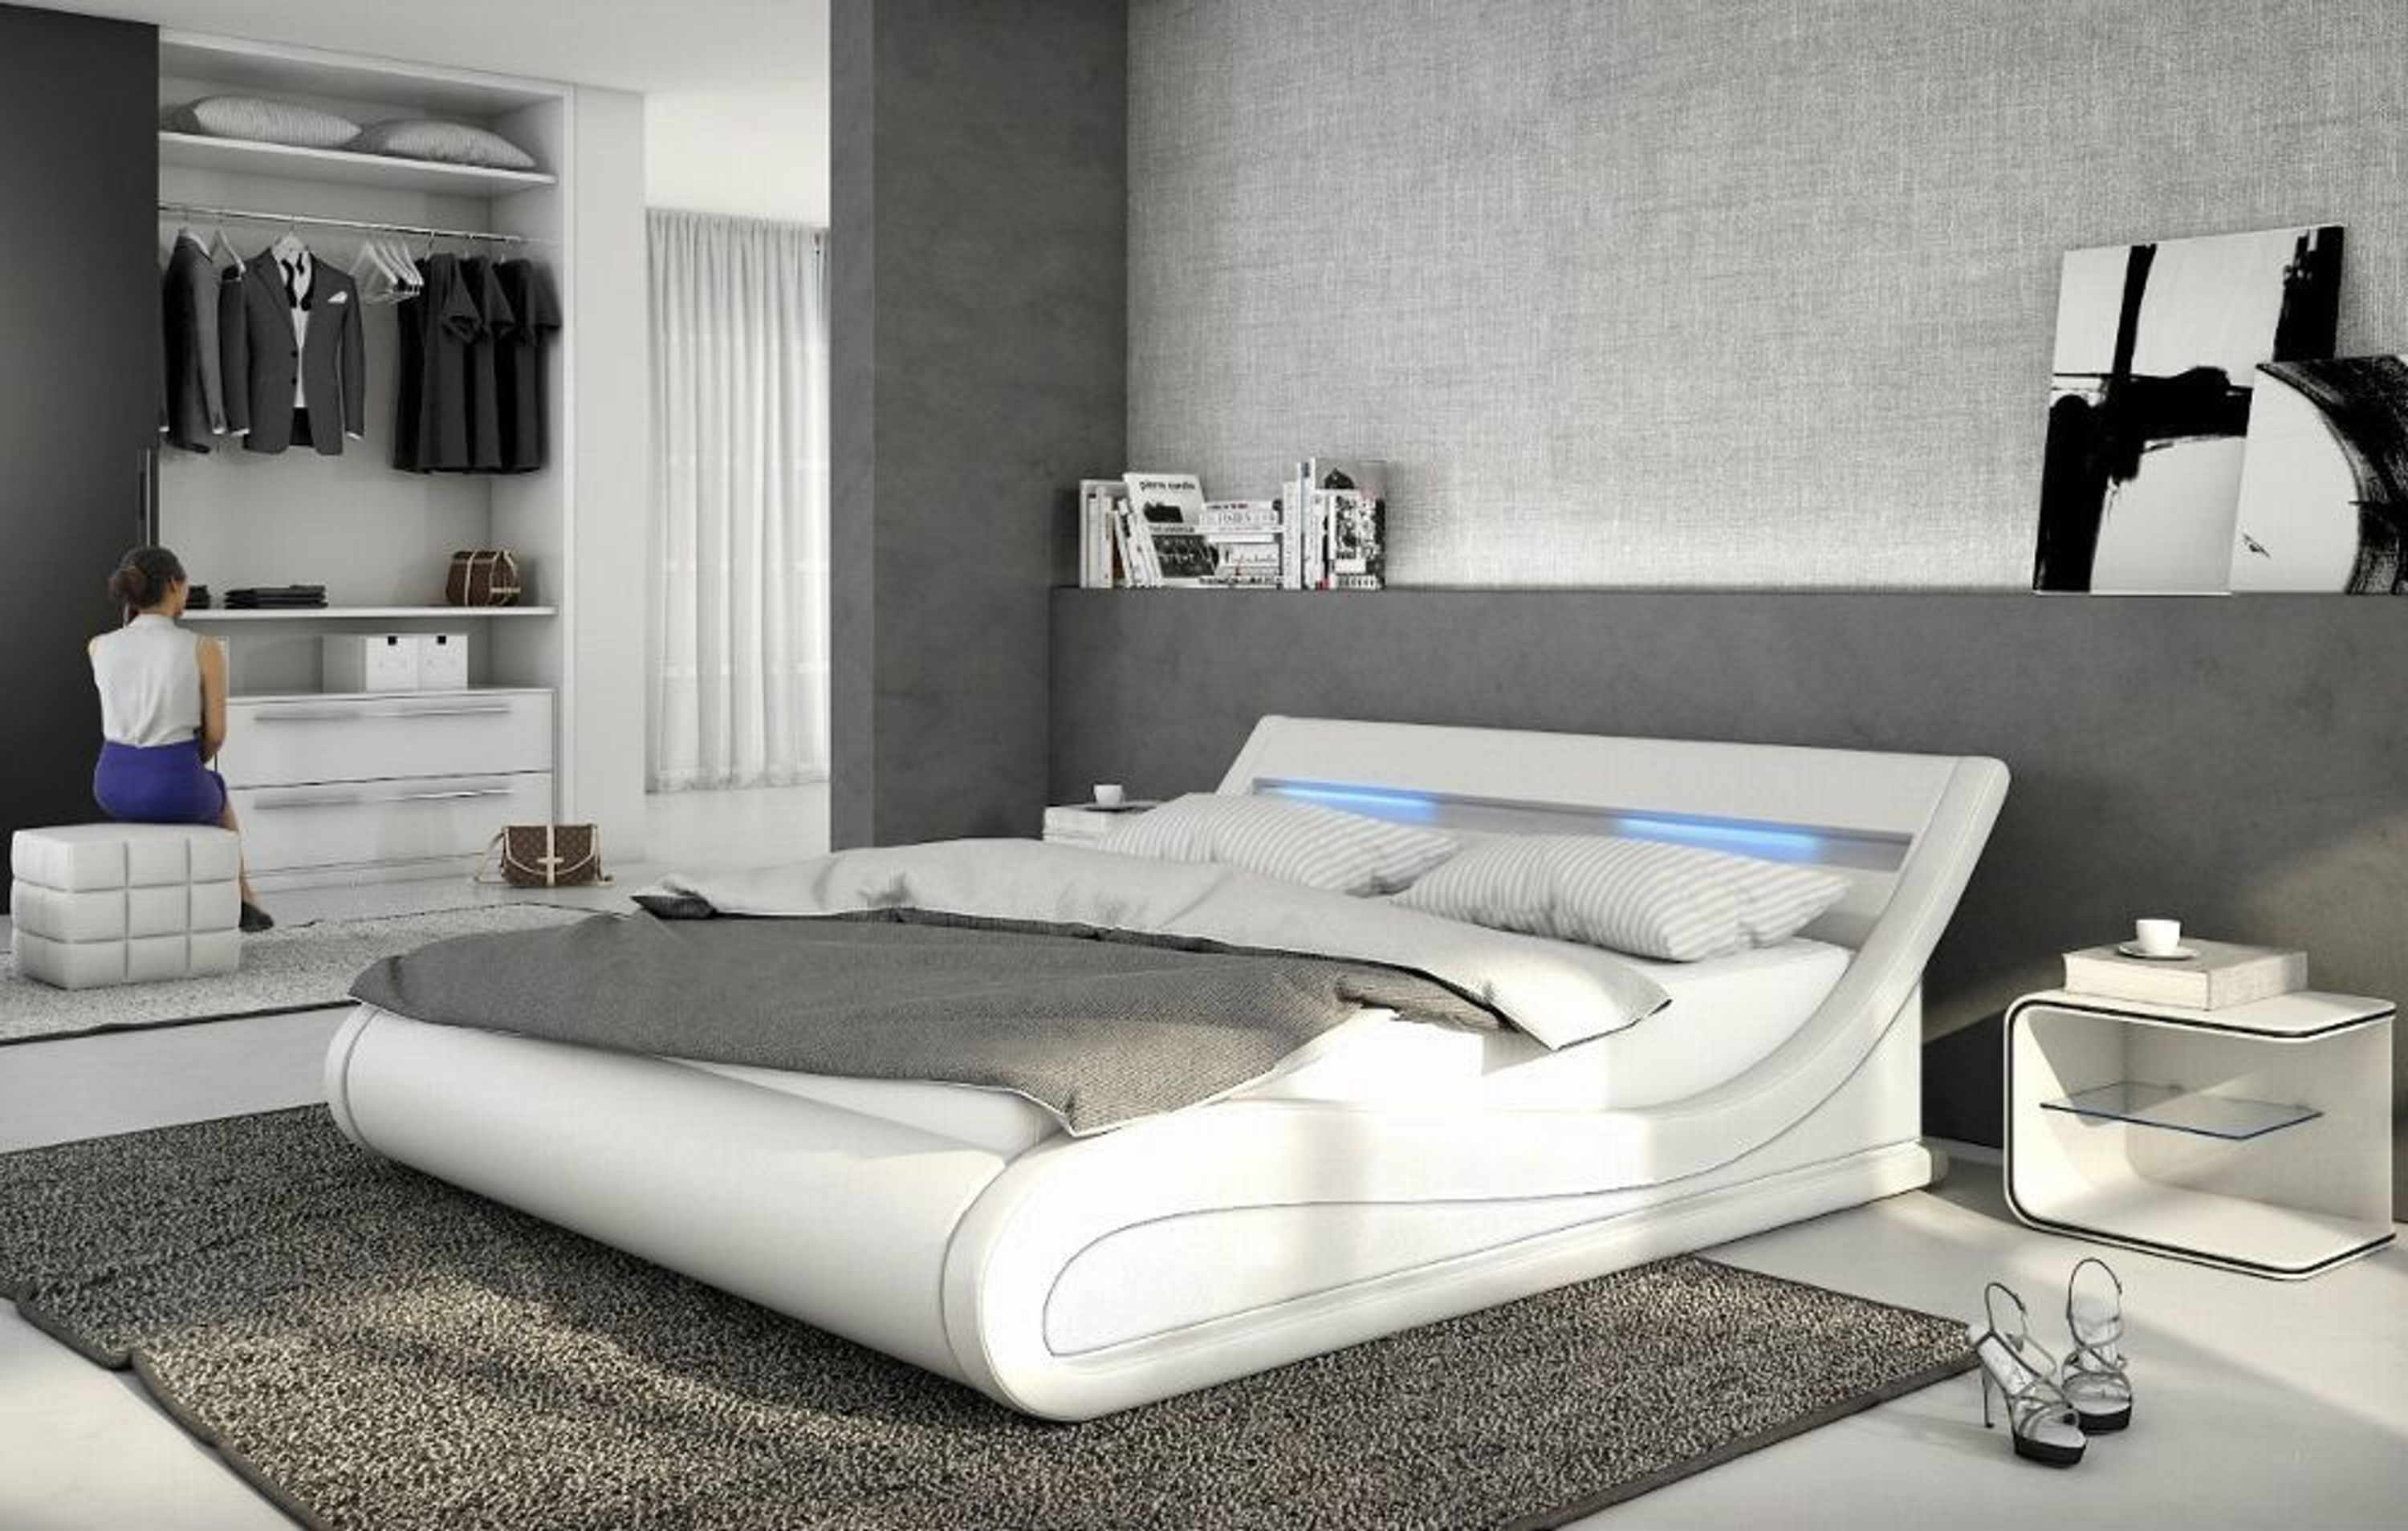 luxus leder polsterbett gewelltes leder bett wei o schwarz wellenf rmiges lederbett kaufen bei. Black Bedroom Furniture Sets. Home Design Ideas